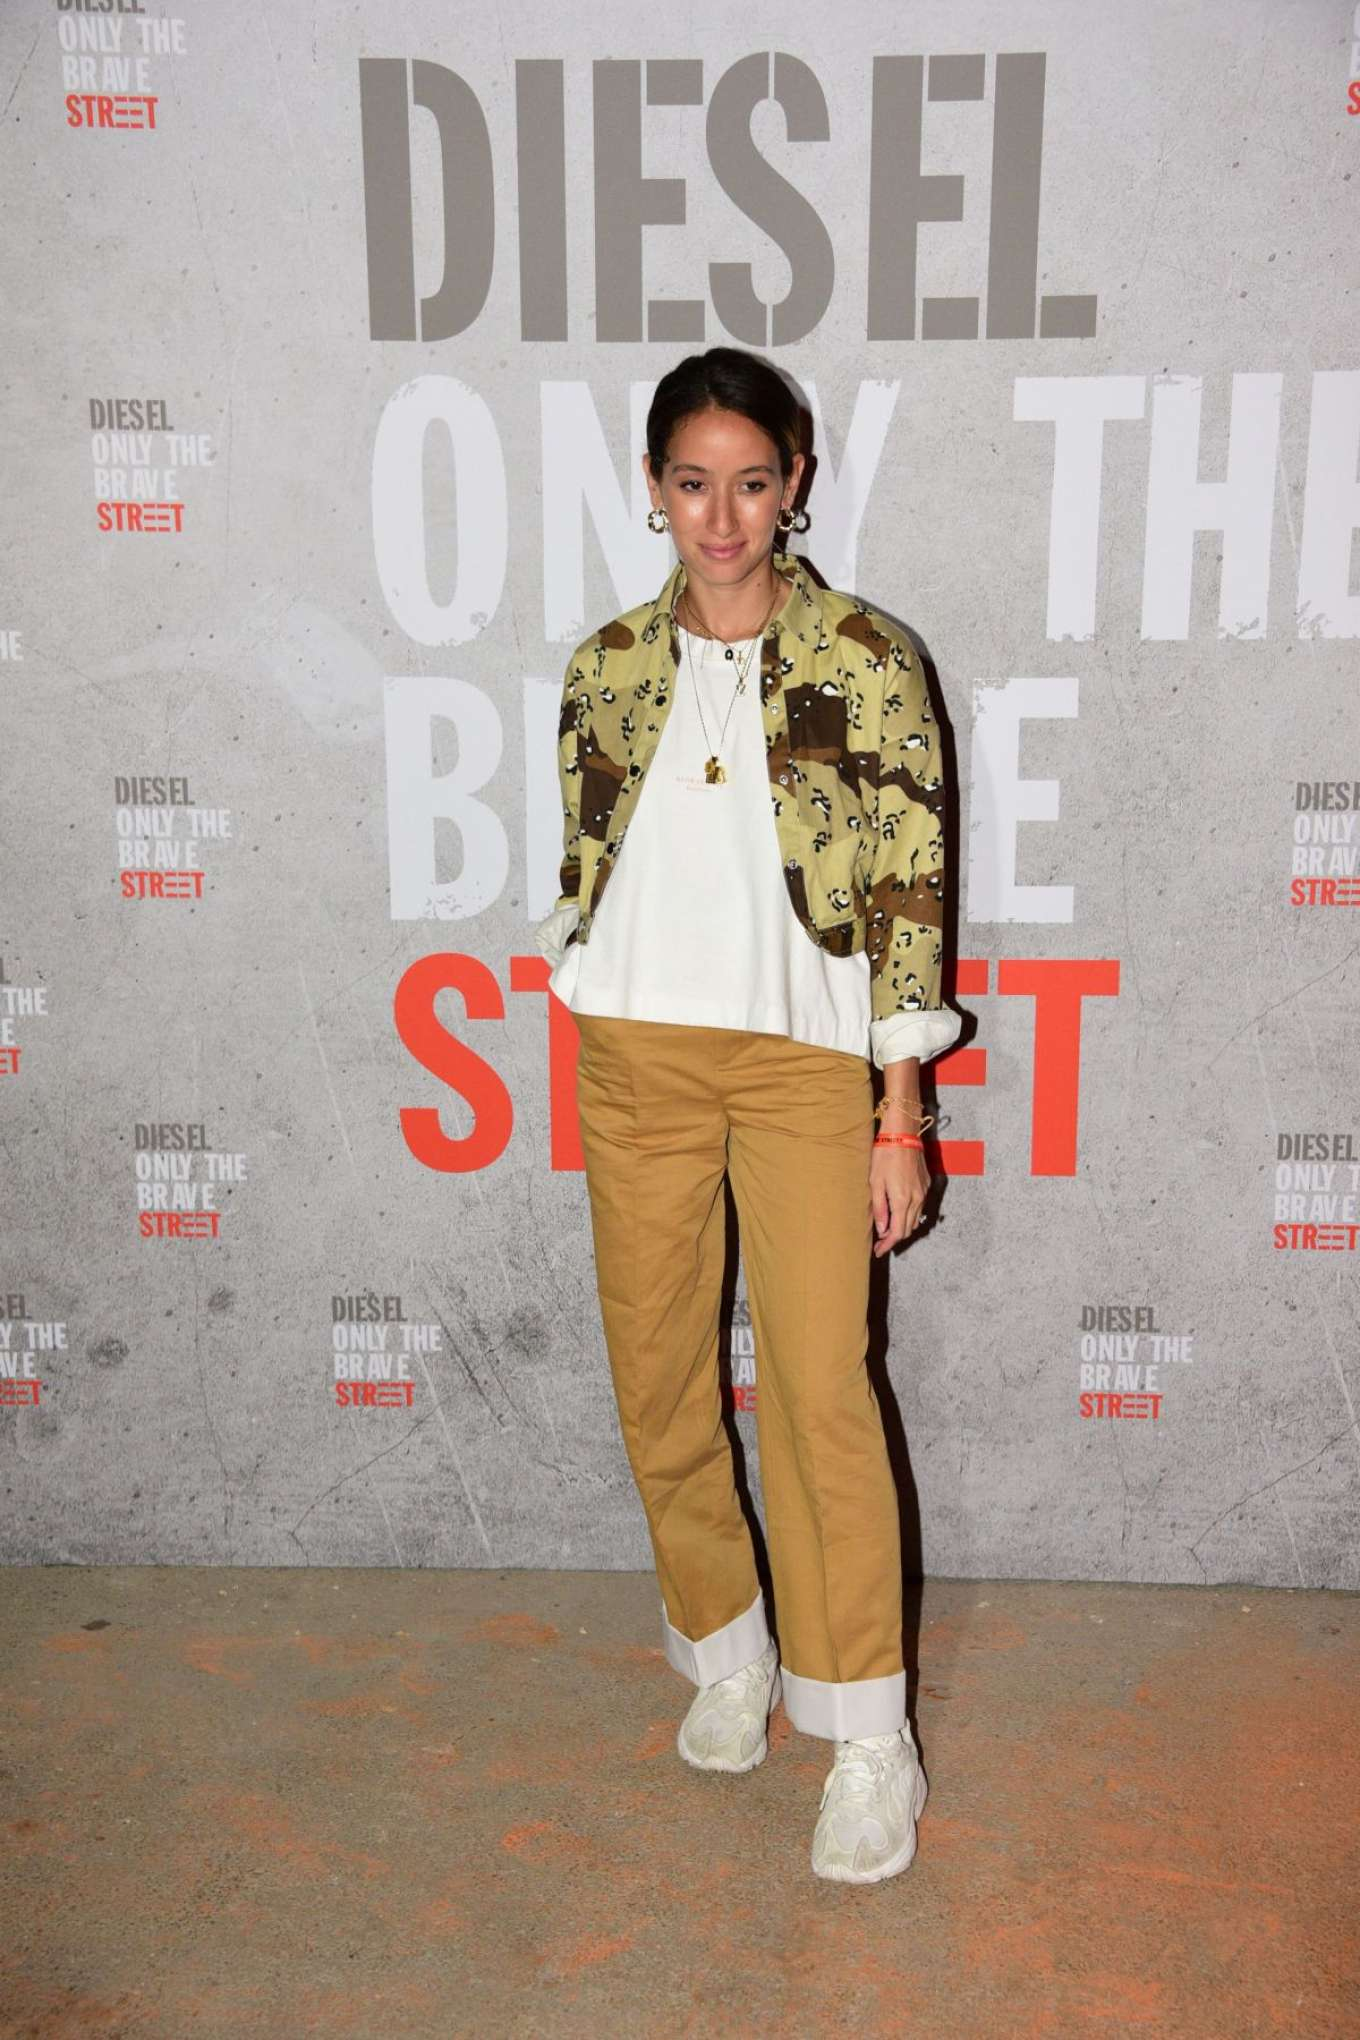 Alexandra Guerain 2018 : Alexandra Guerain: Diesel Fragrance Only The Brave Street Launch Party -01